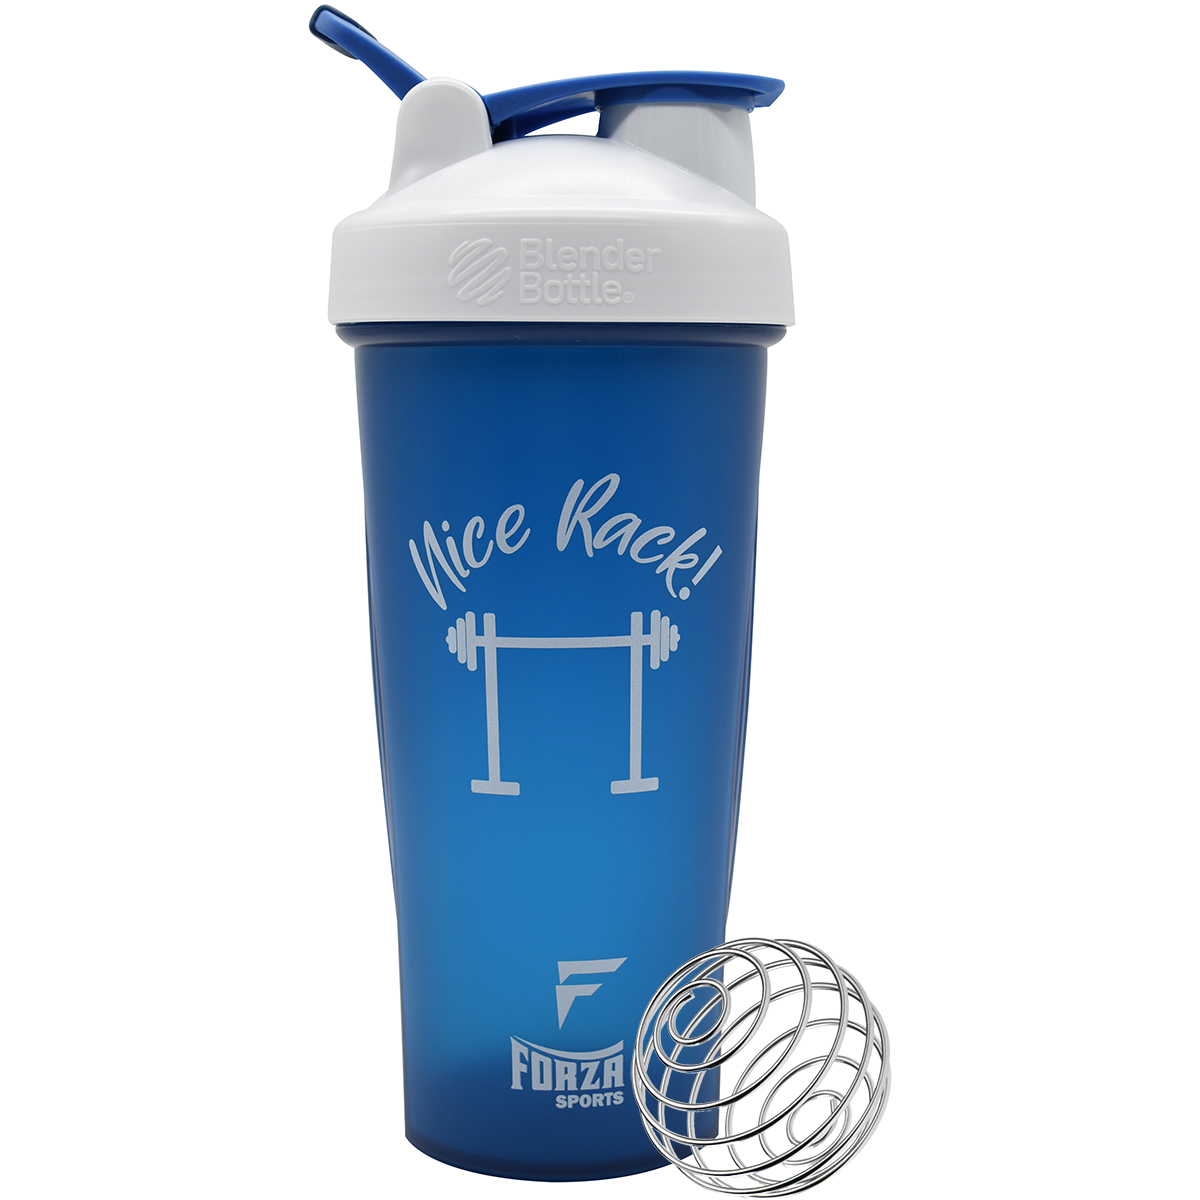 Blender-Bottle-x-Forza-Sports-Classic-28-oz-Shaker-Mixer-Cup-with-Loop-Top thumbnail 31